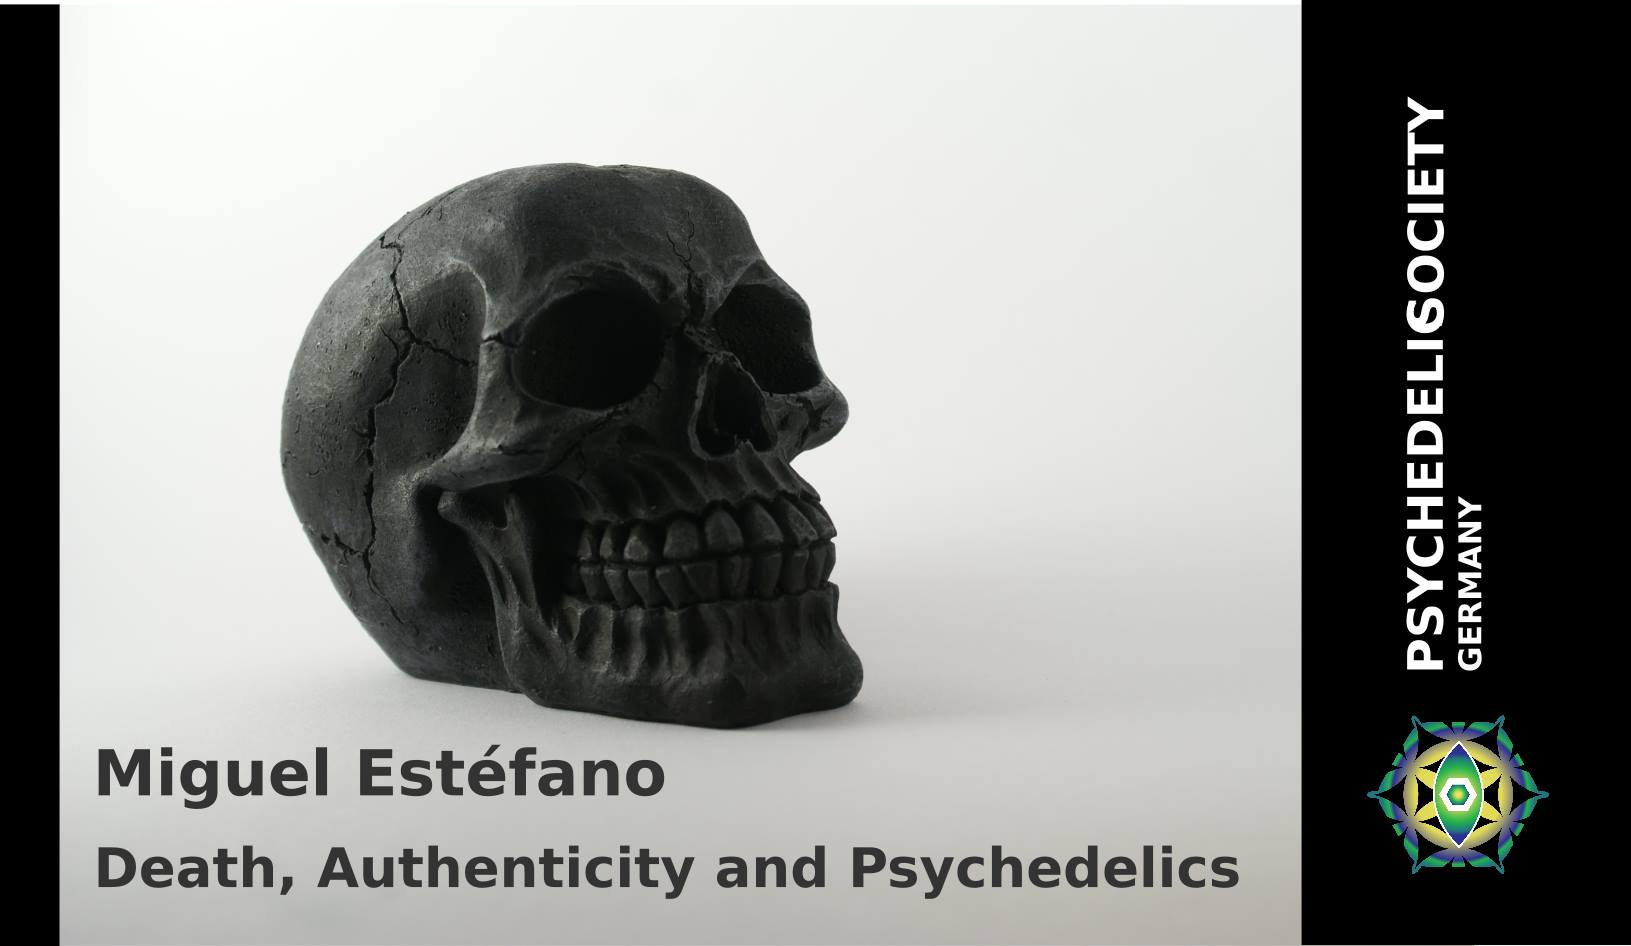 Death, Authenticity and Psychedelics